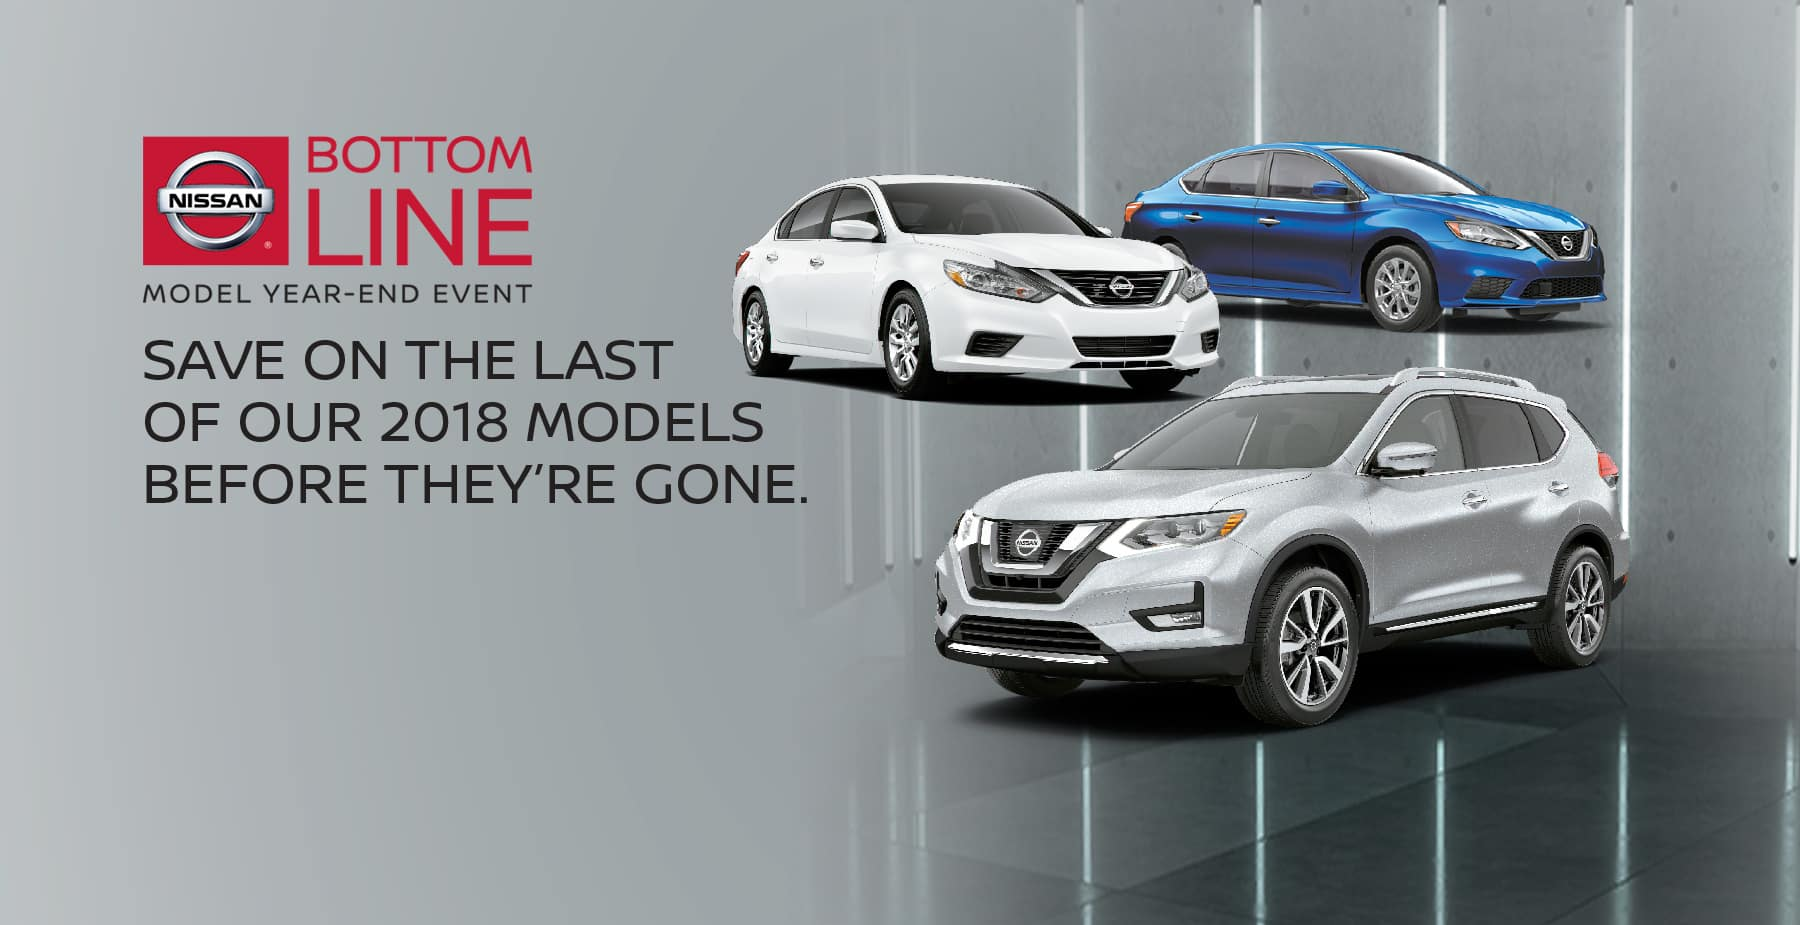 Shop Now During Nissan's Bottom Line Model Year-End Event at Star Nissan!